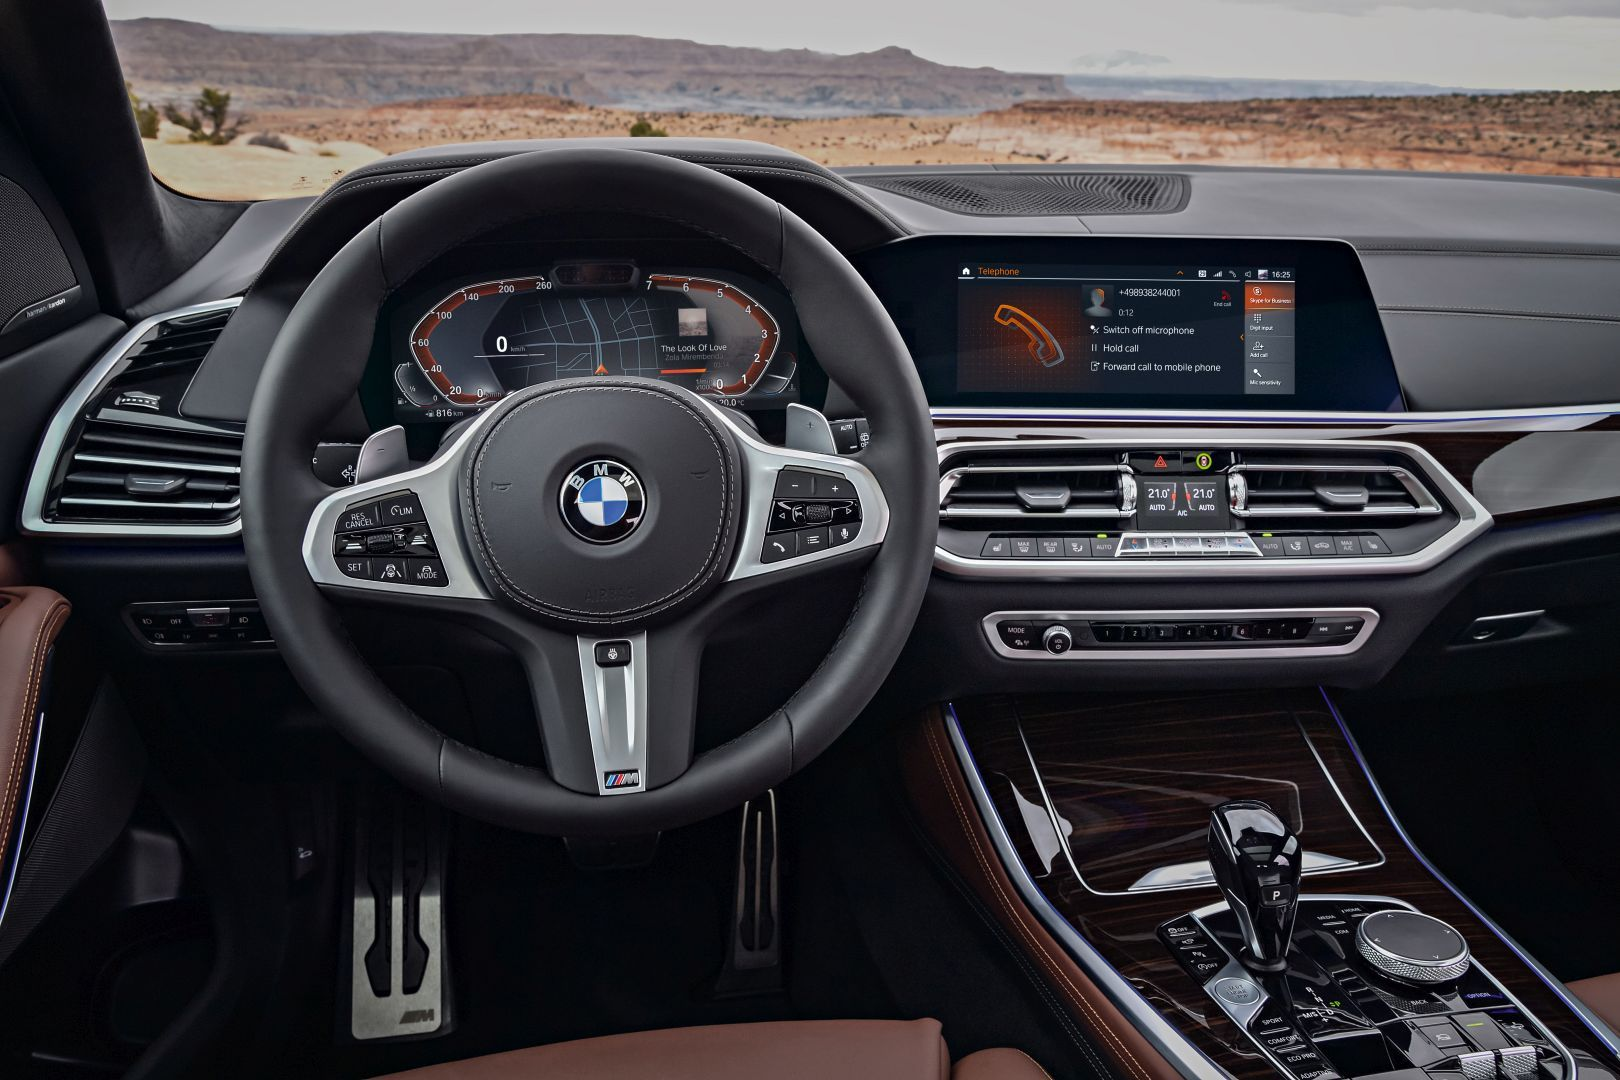 New Bmw Cockpit Includes Driver Camera For Semi Autonomous Driving